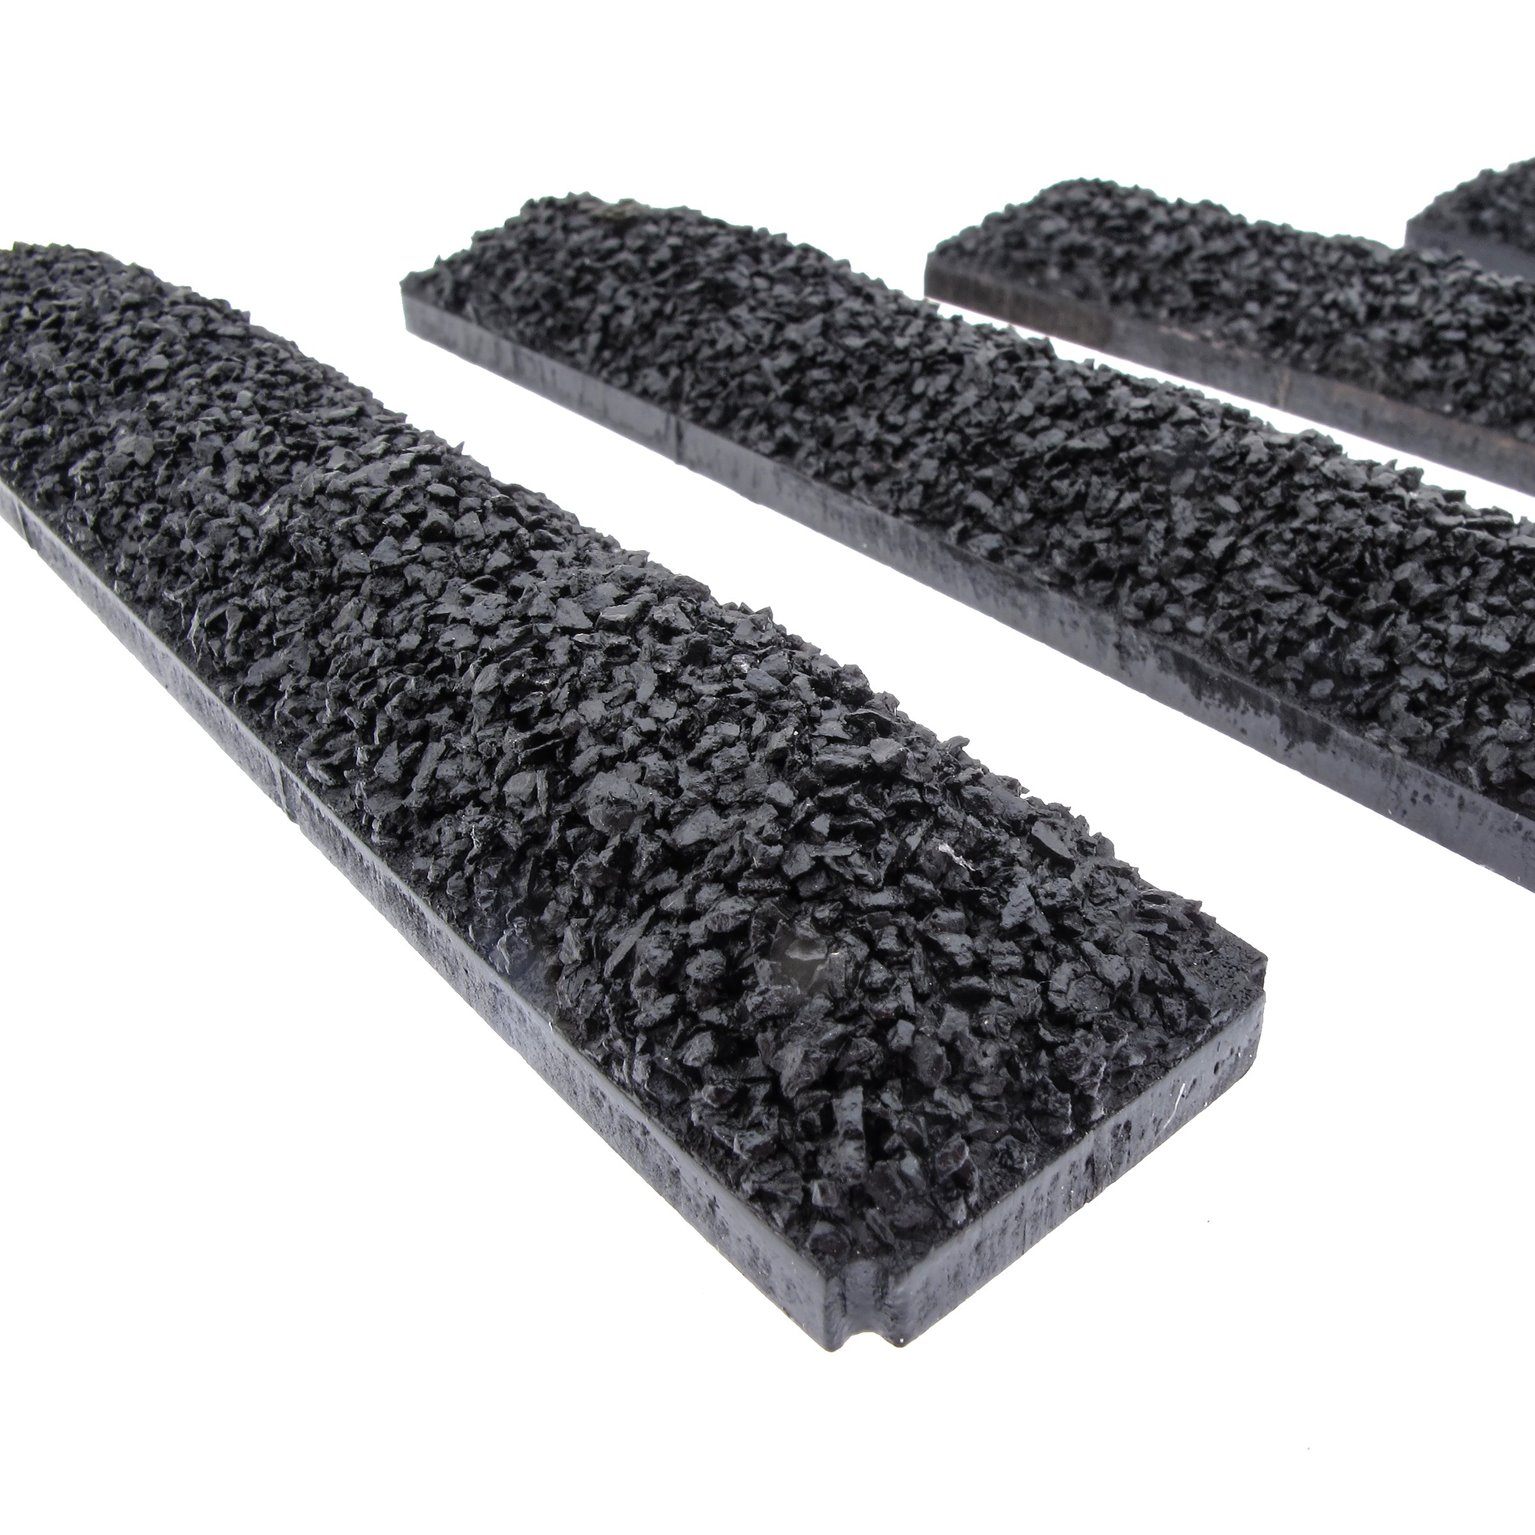 Coal - 'Real' Loads for PTA Hoppers - 5 Pack